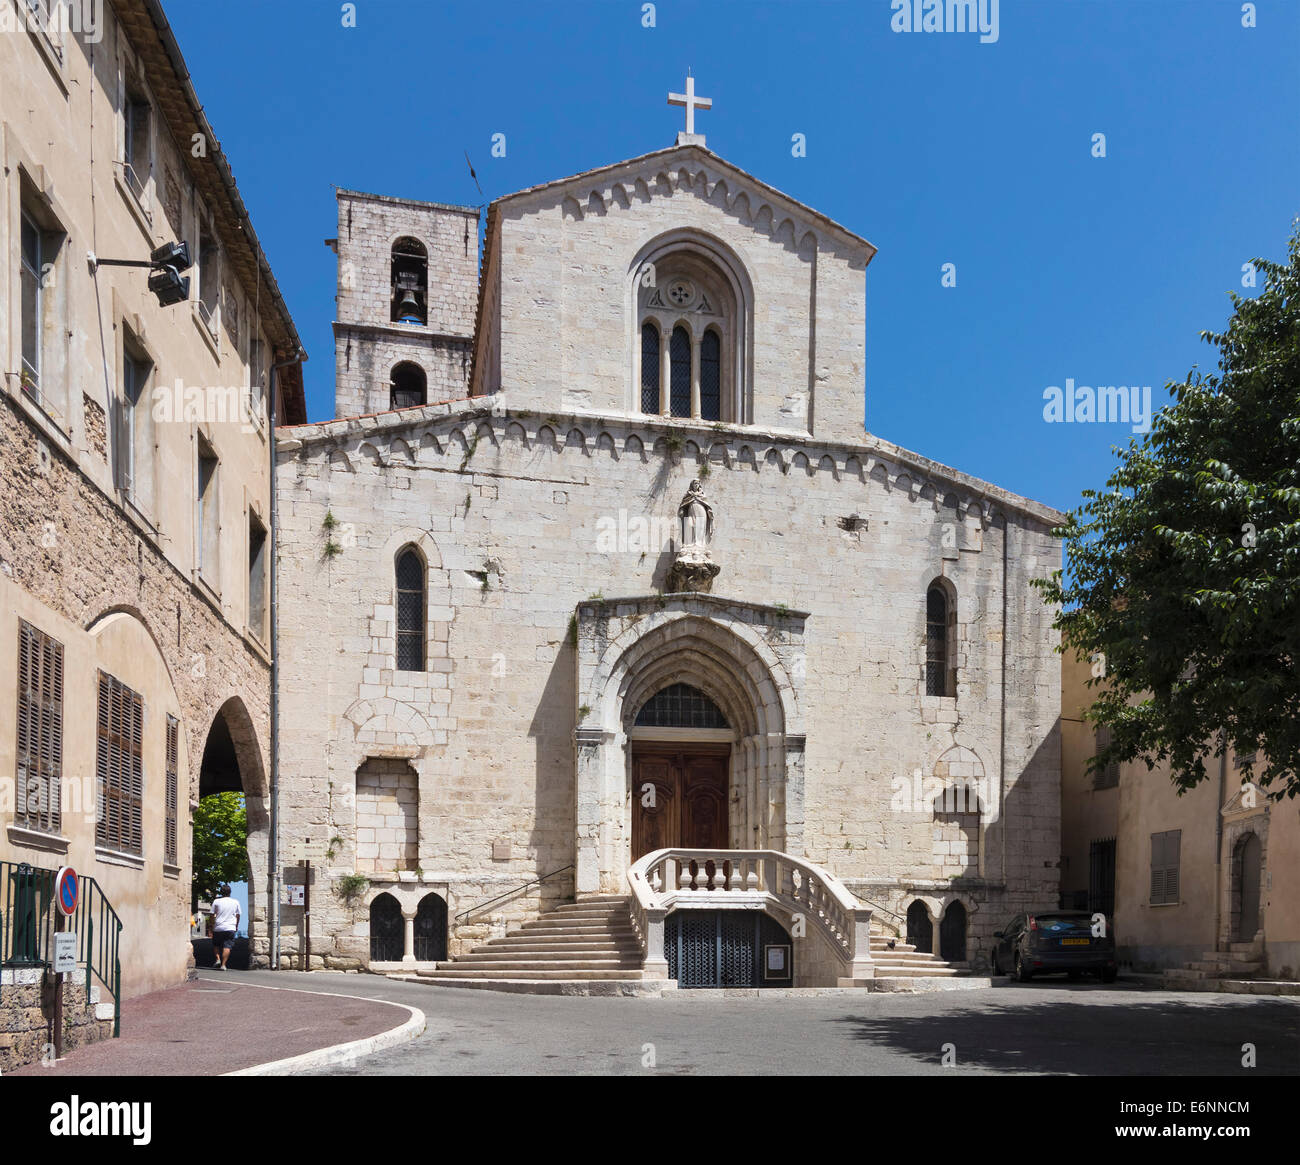 Grasse Cathedral church, Grasse, Provence, France, Europe - Stock Image